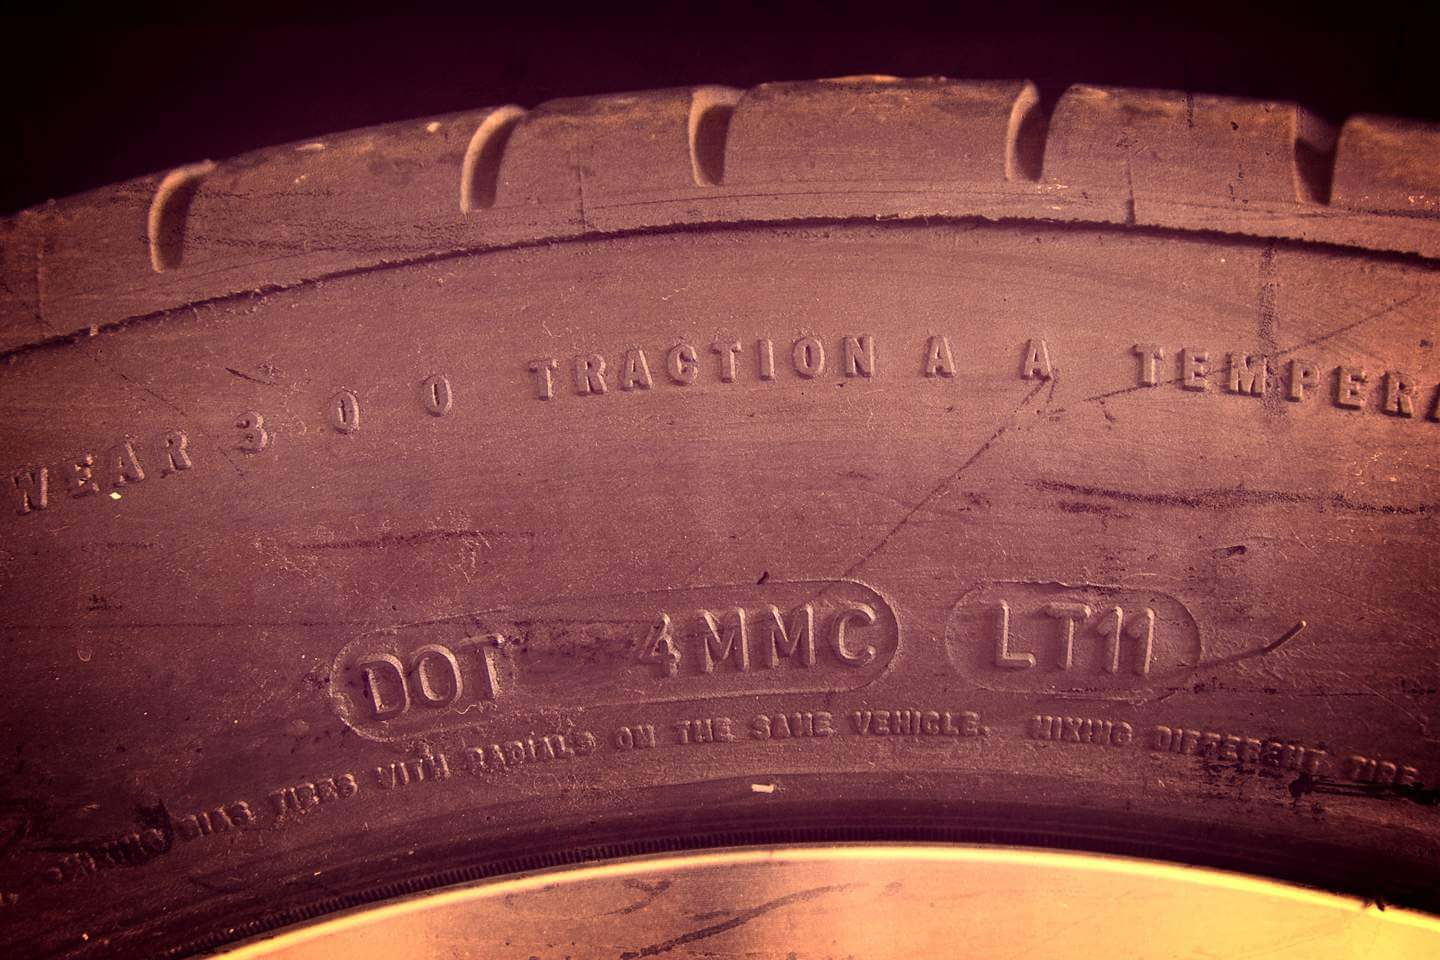 Tire identification number DOT